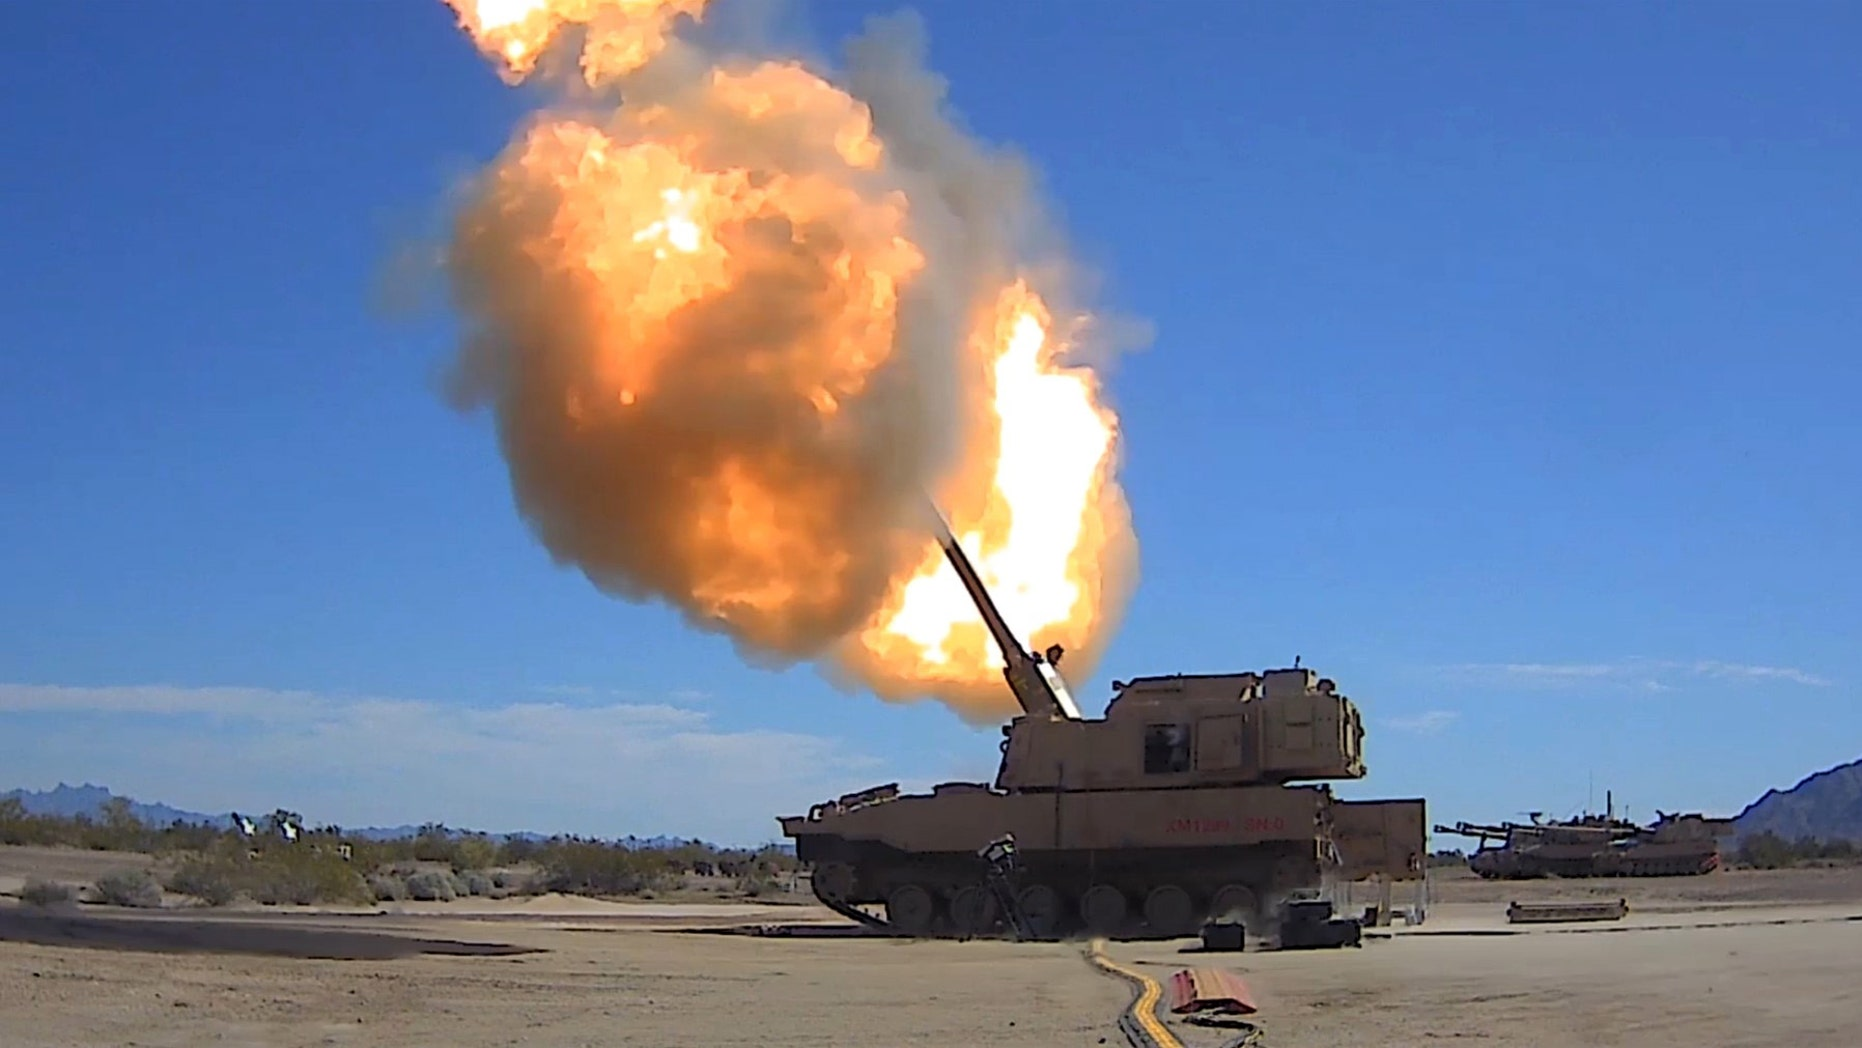 U.S. Army photo of the firing March 6 at Yuma Proving Grounds, Ariz. (U.S. Army)